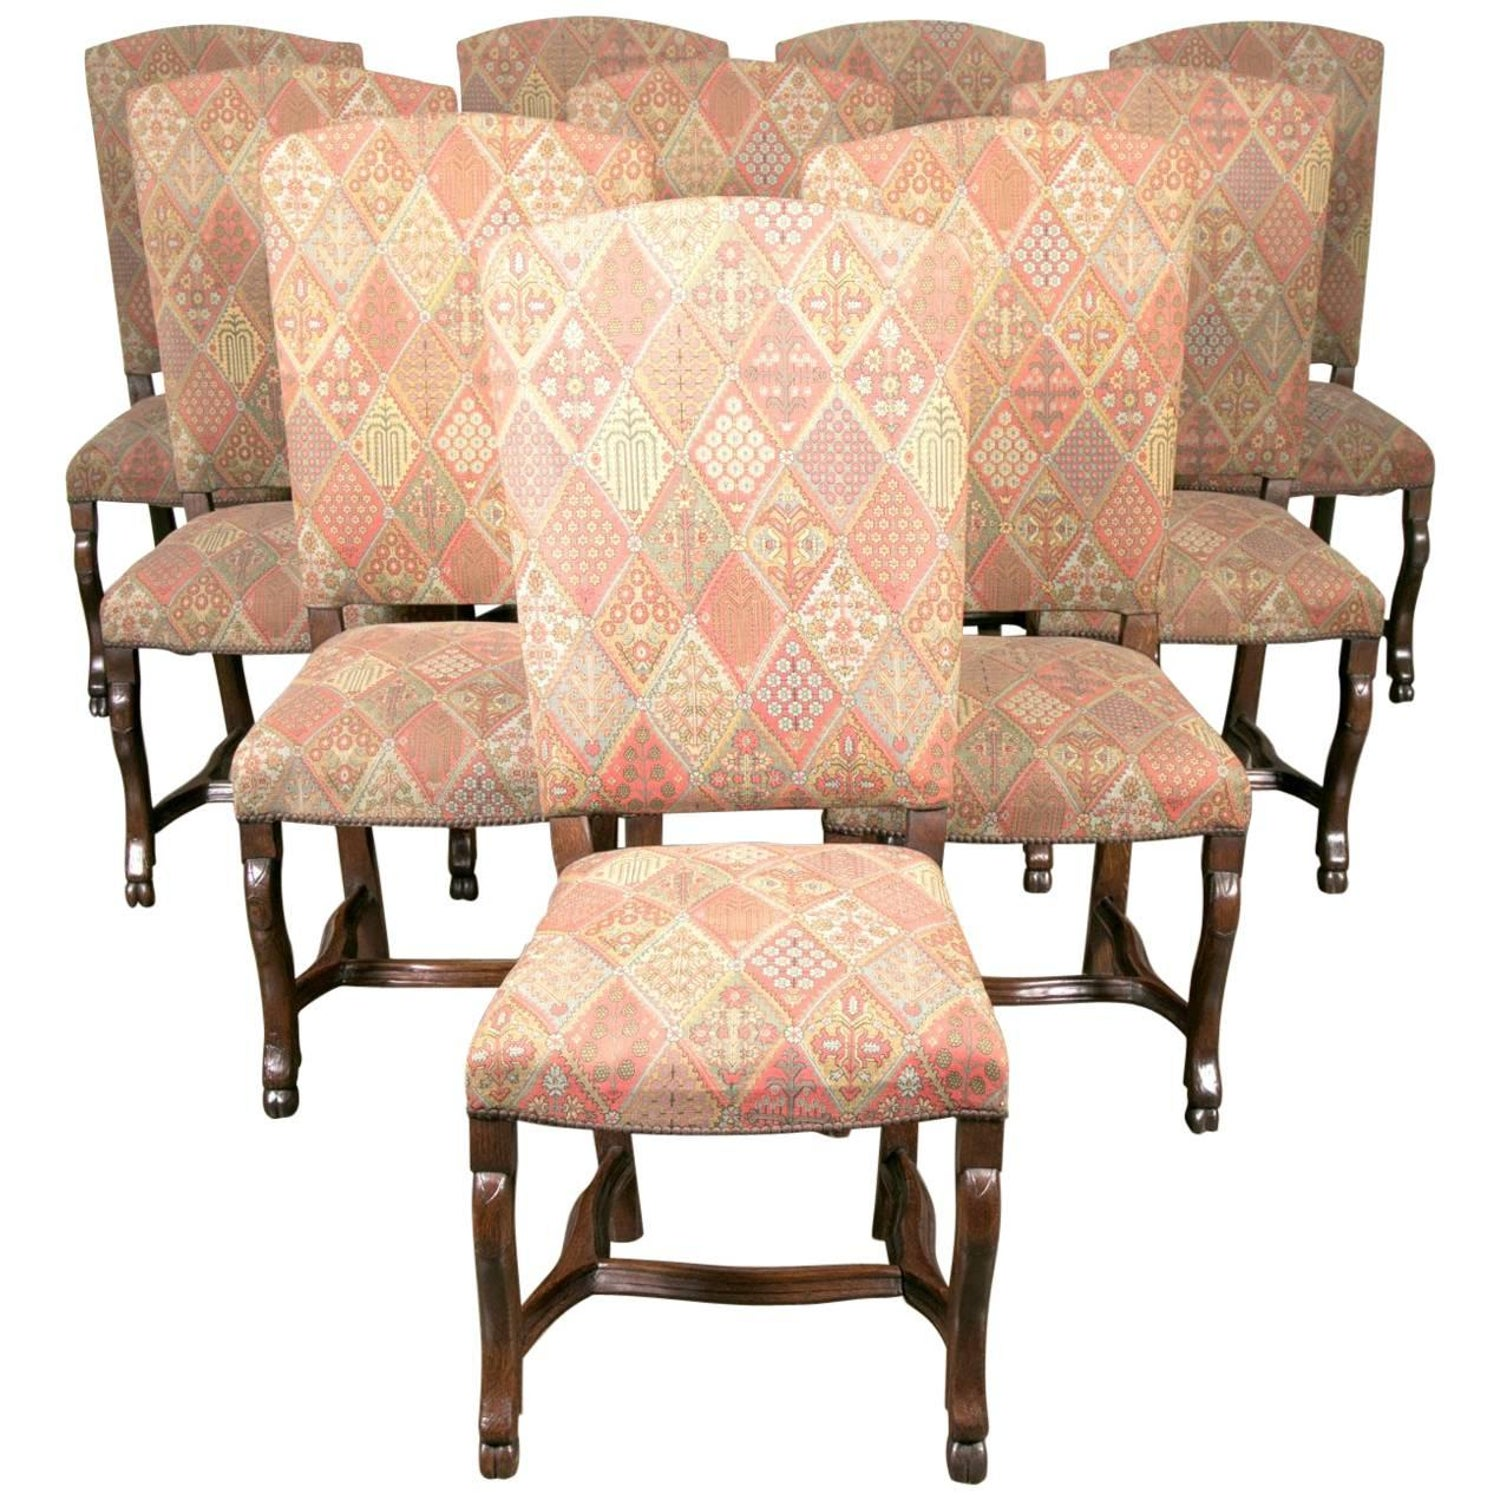 19th Century Set of Ten Louis XIV Style Dining Chairs For Sale at